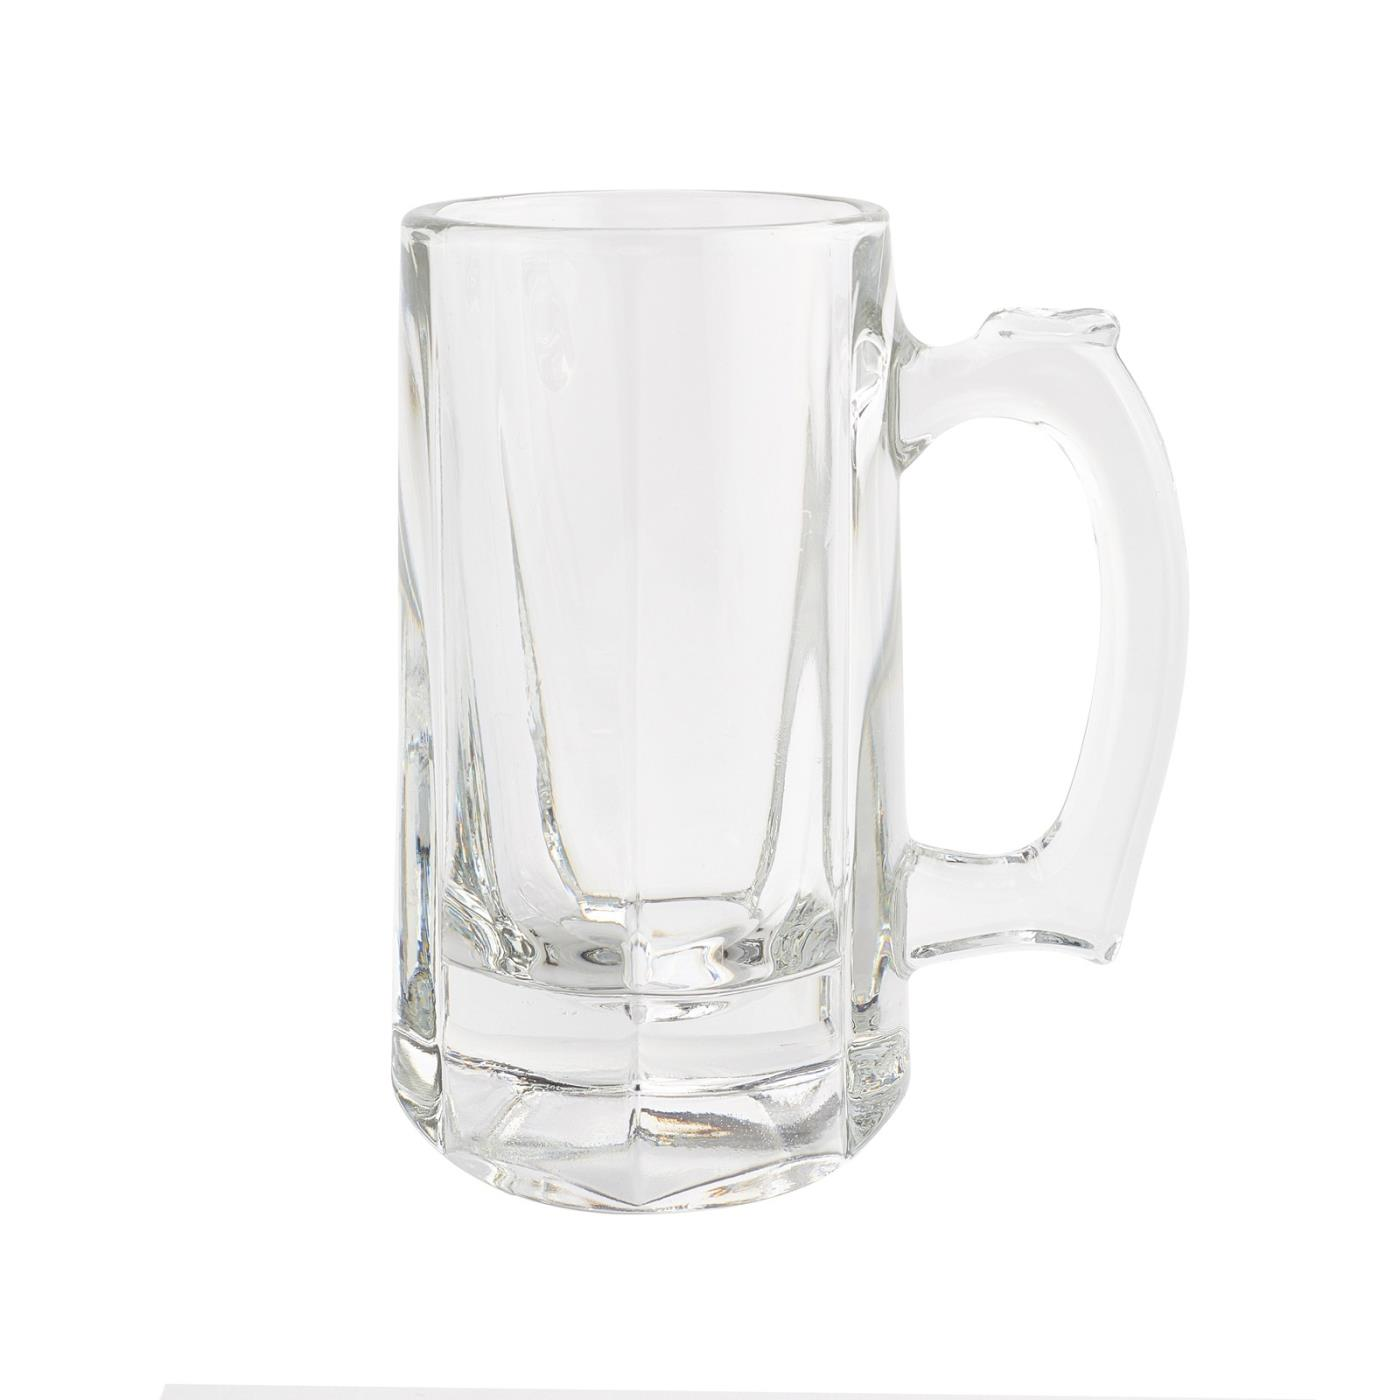 Stein Glass 10 oz